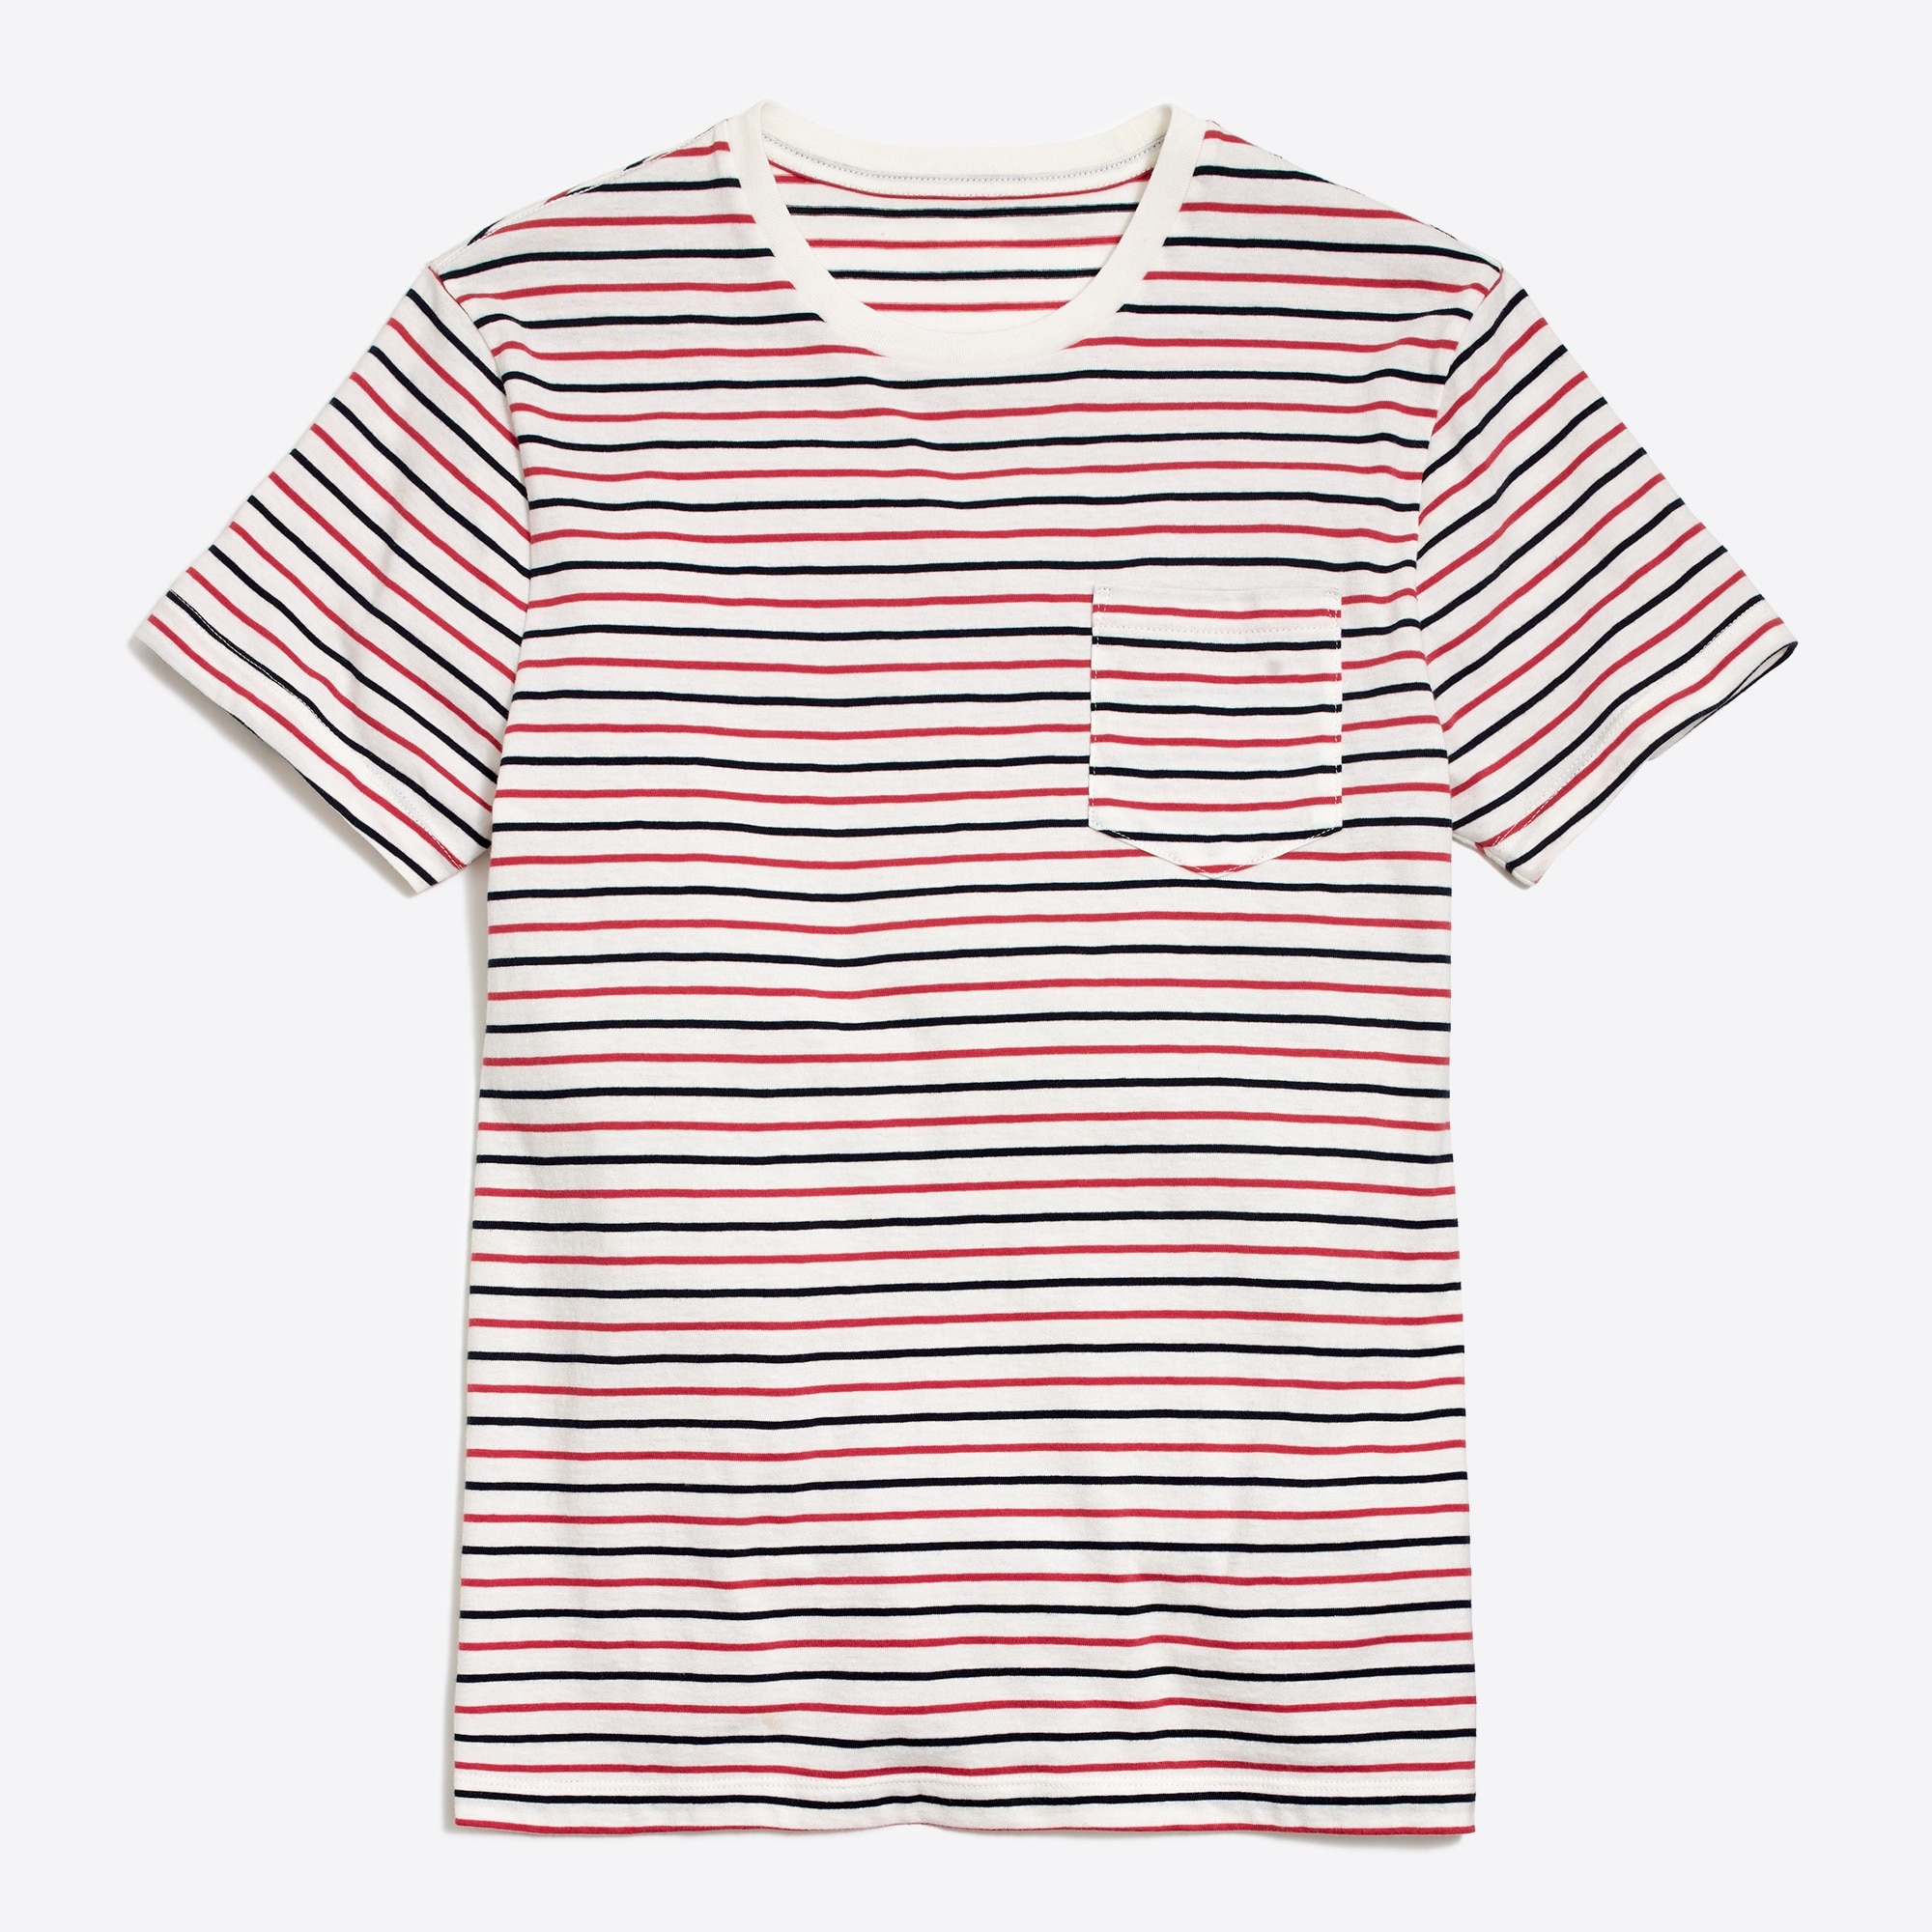 J.Crew Mercantile Broken-in seaside striped T-shirt